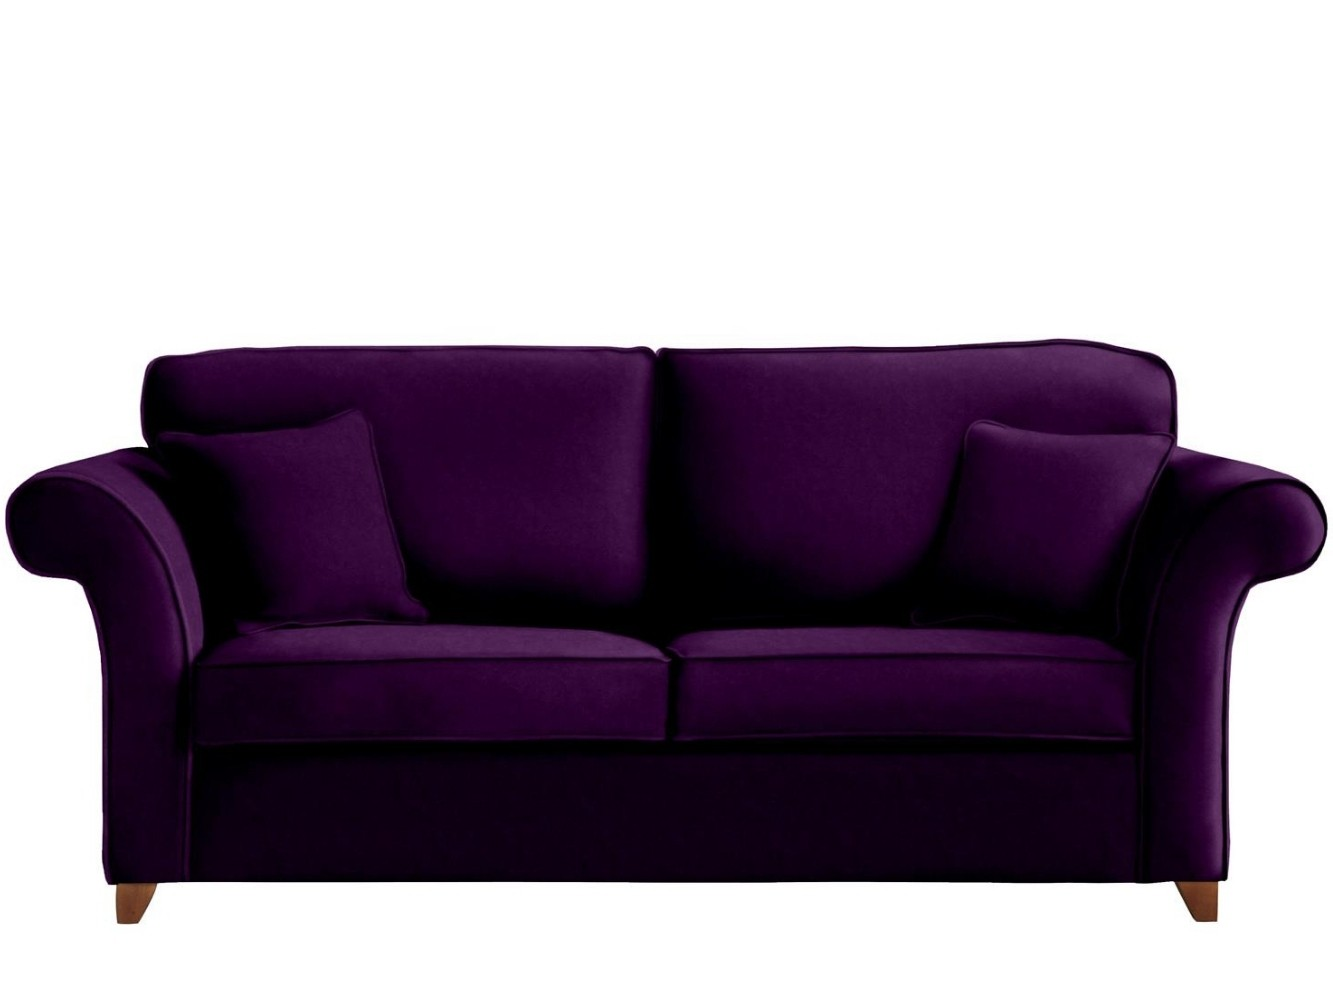 This is how I look in Cotton Velvet Grape with reflex foam seat cushions